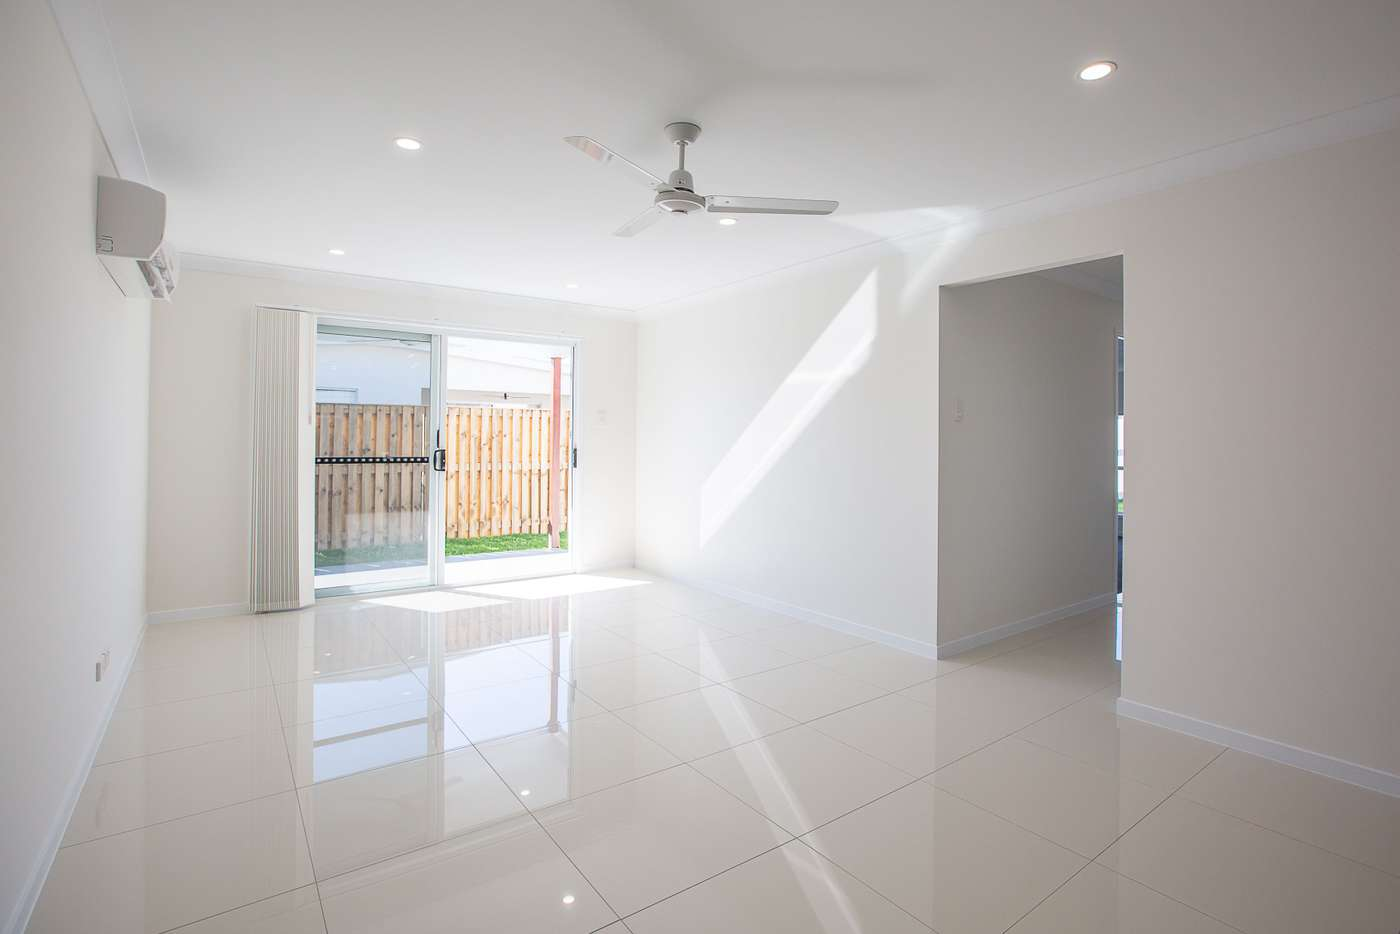 Main view of Homely house listing, 1/1 Lauenstein Crescent, Pimpama QLD 4209